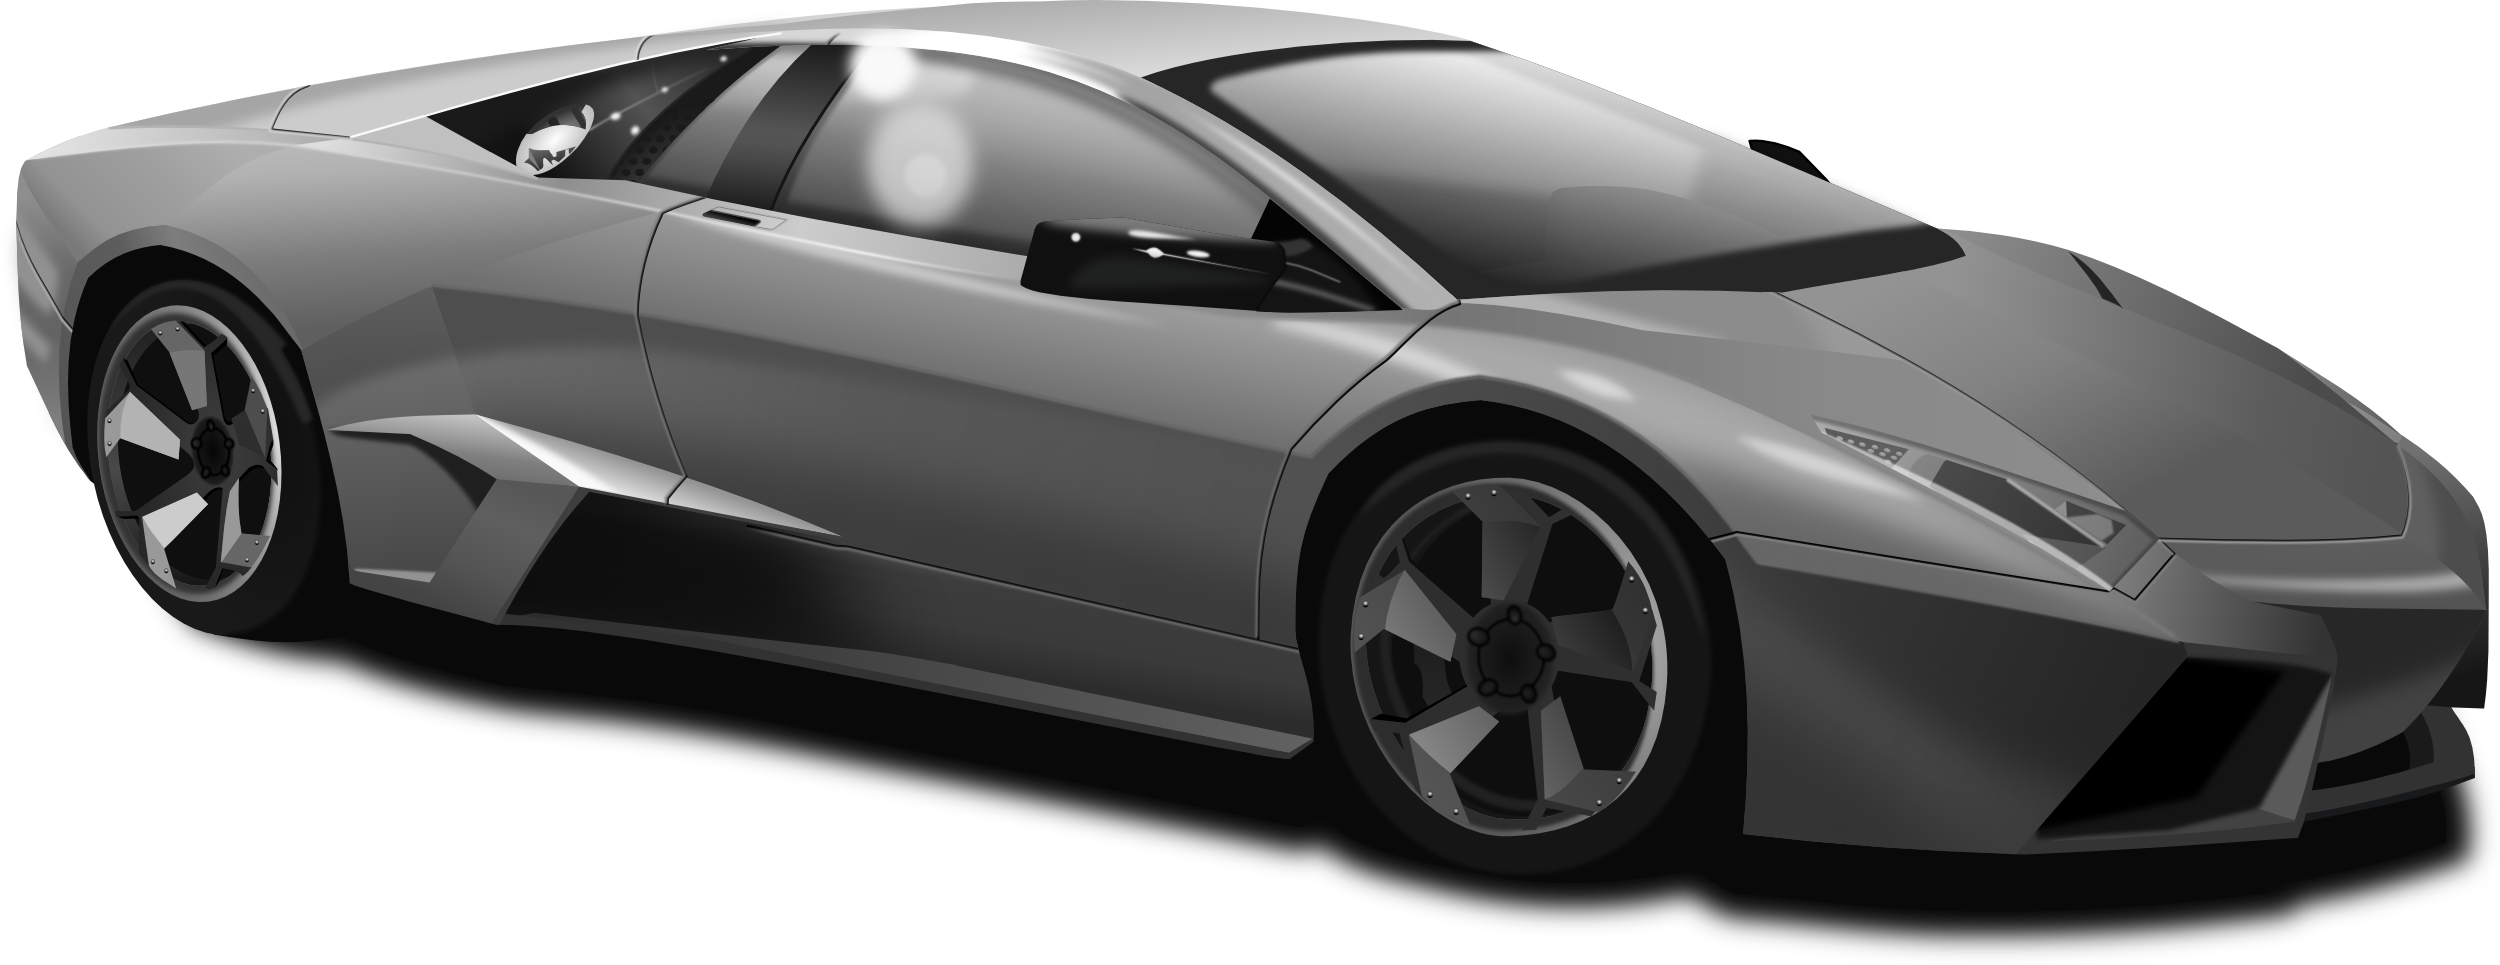 Now you can download Lamborghini Transparent PNG File